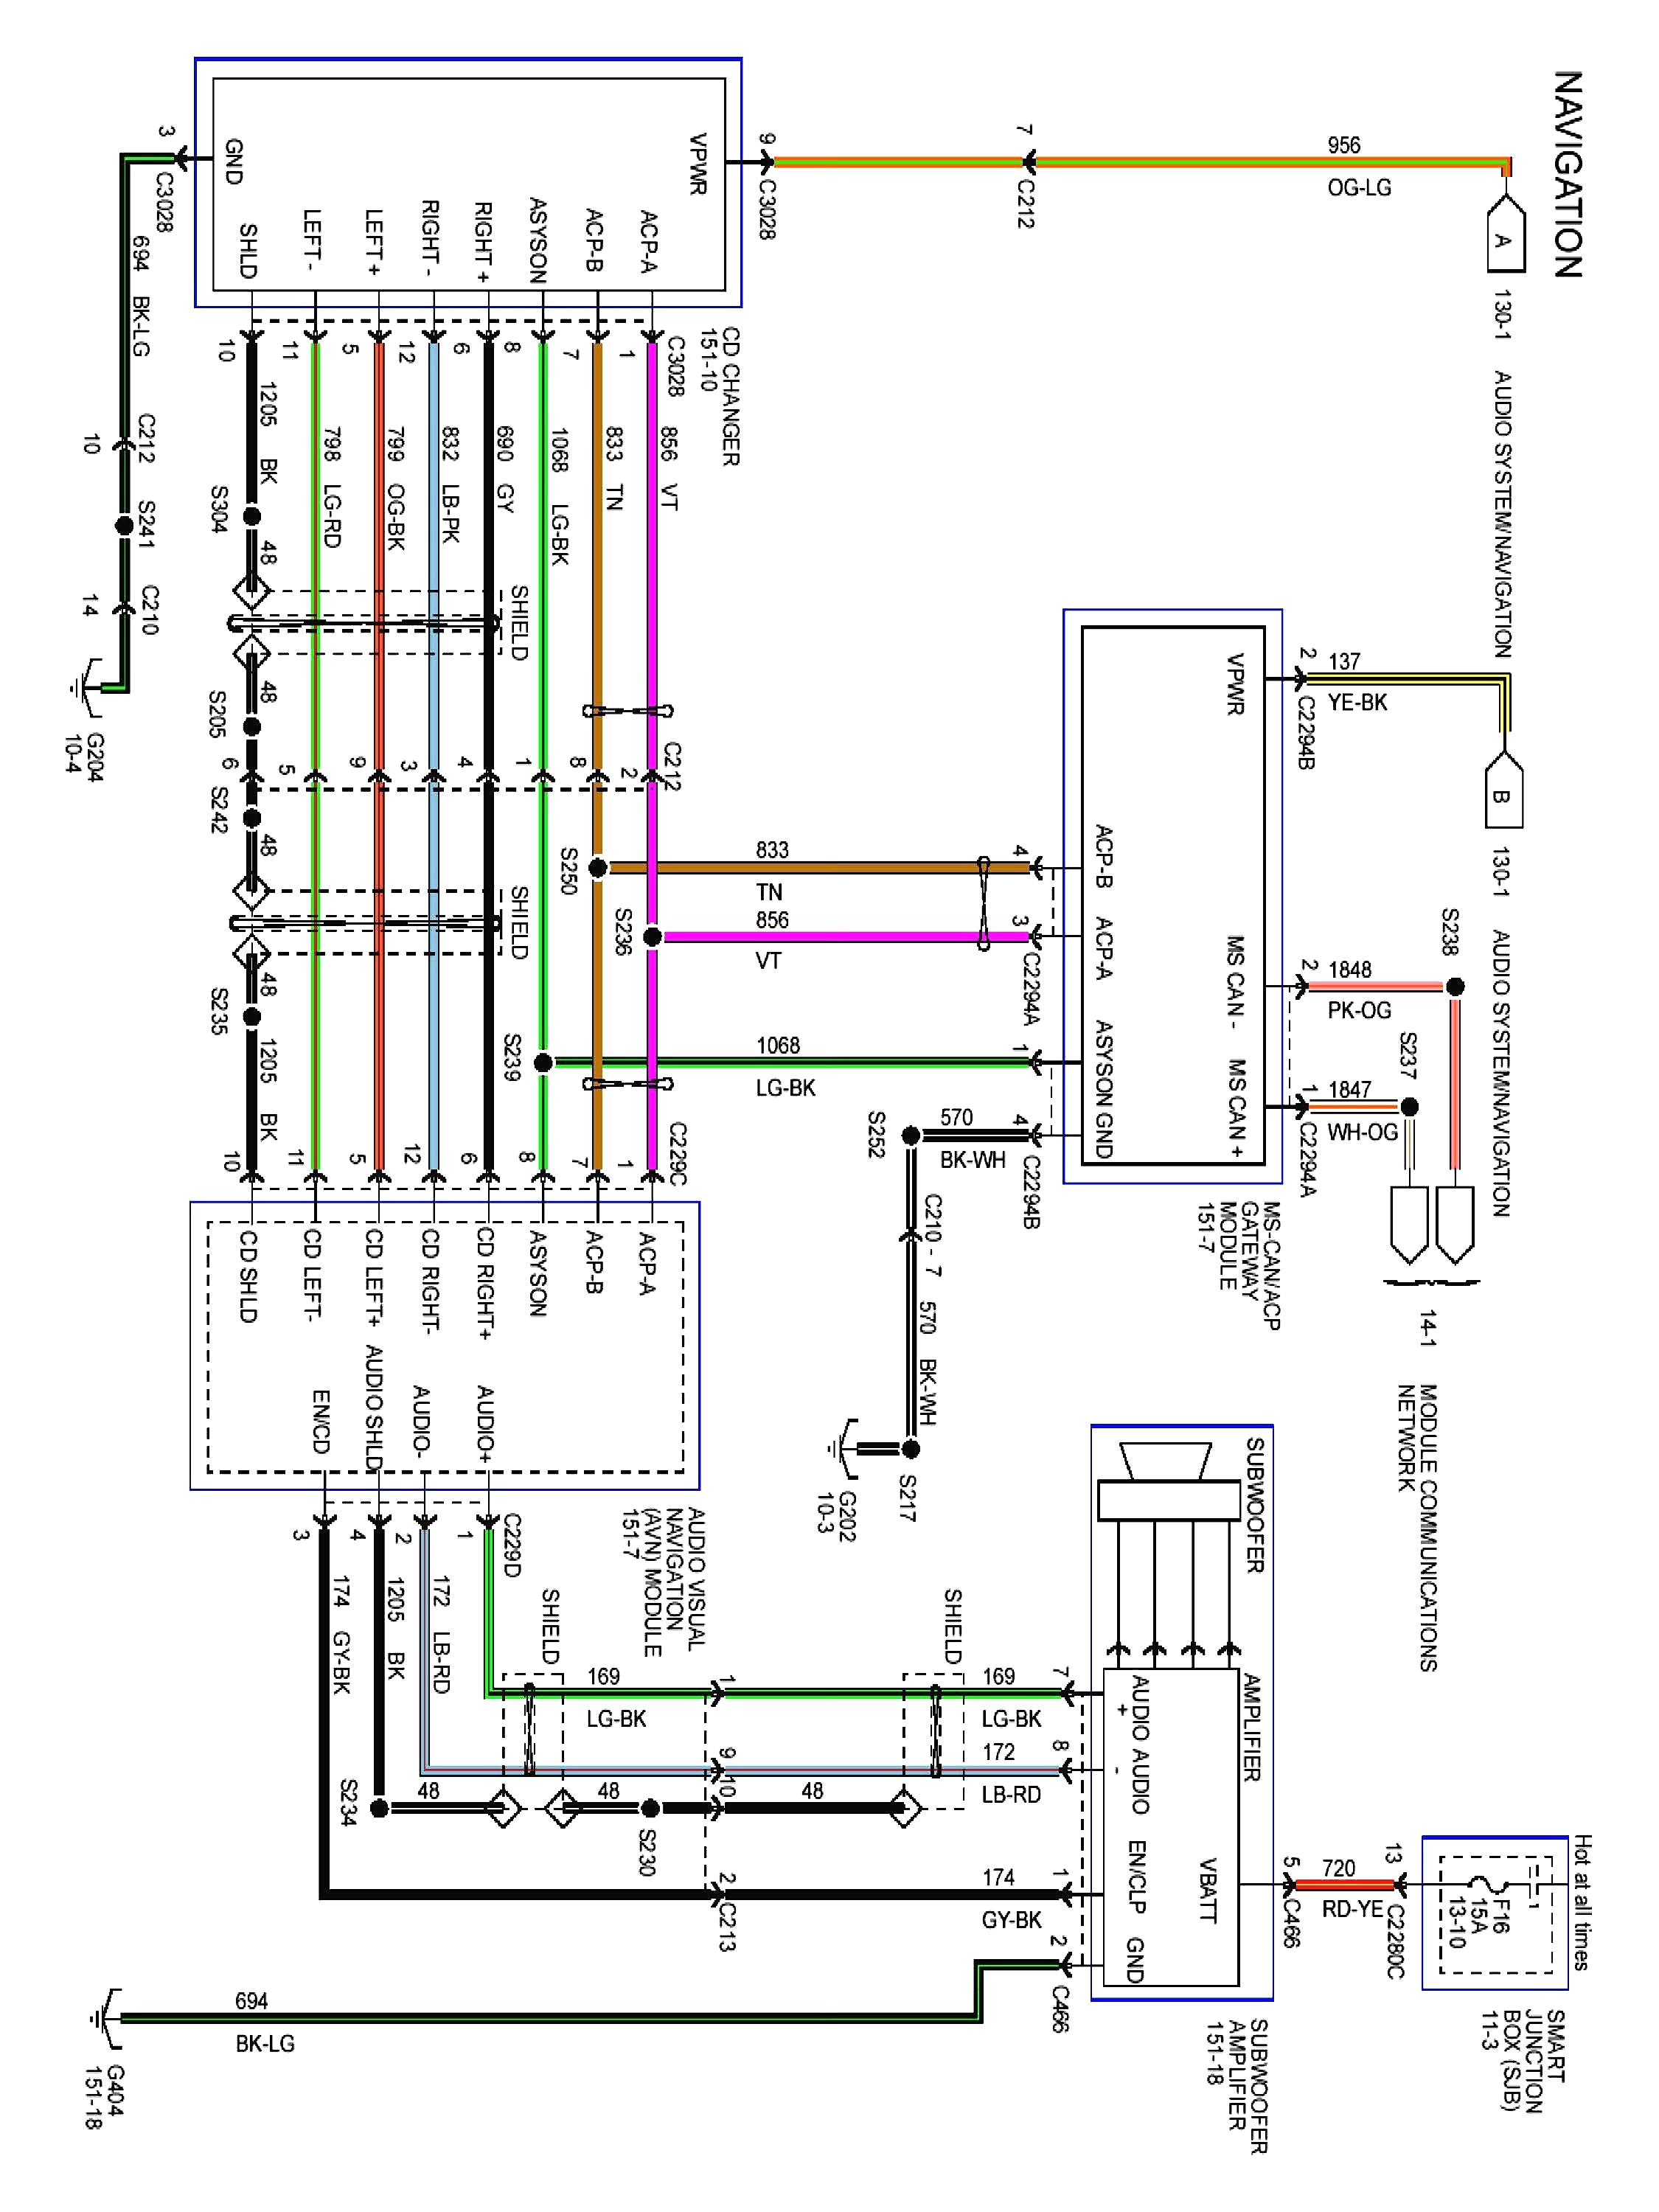 wiring diagram for 1999 ford explorer wiring diagram paper spark plug wire diagram 1999 ford explorer